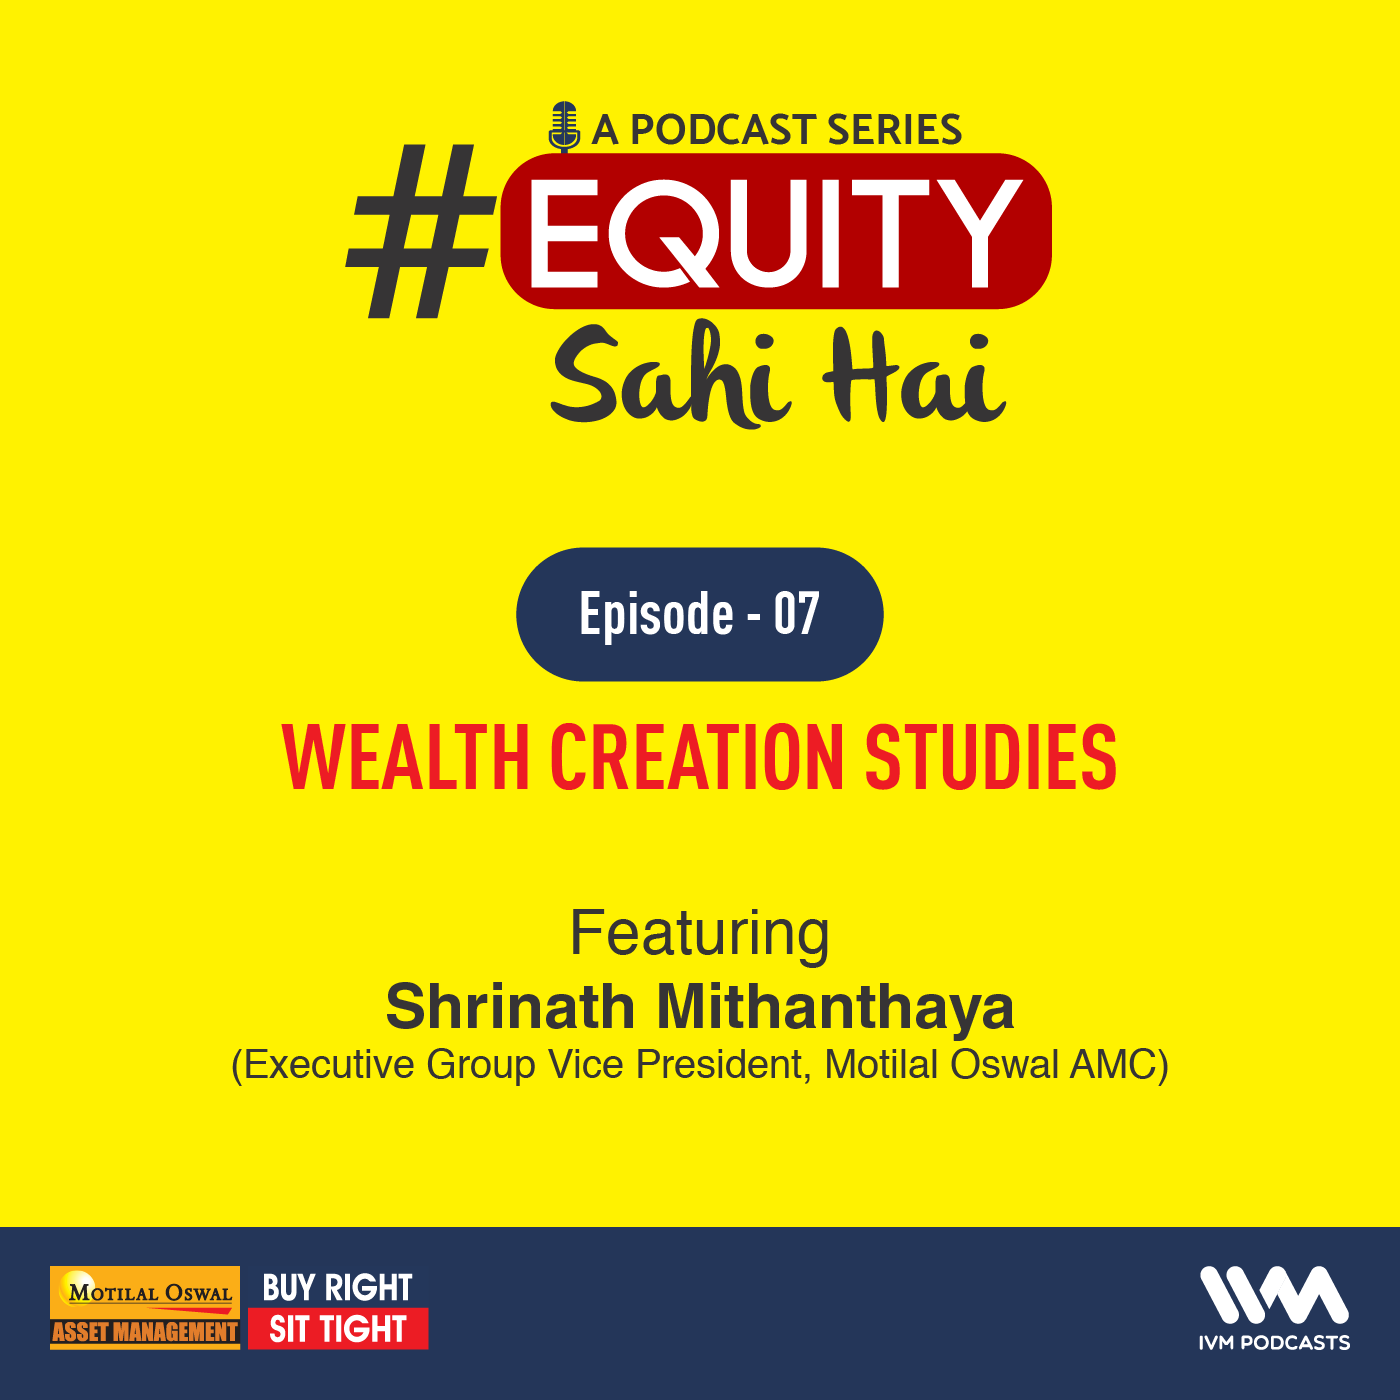 Ep. 07: Wealth Creation Studies